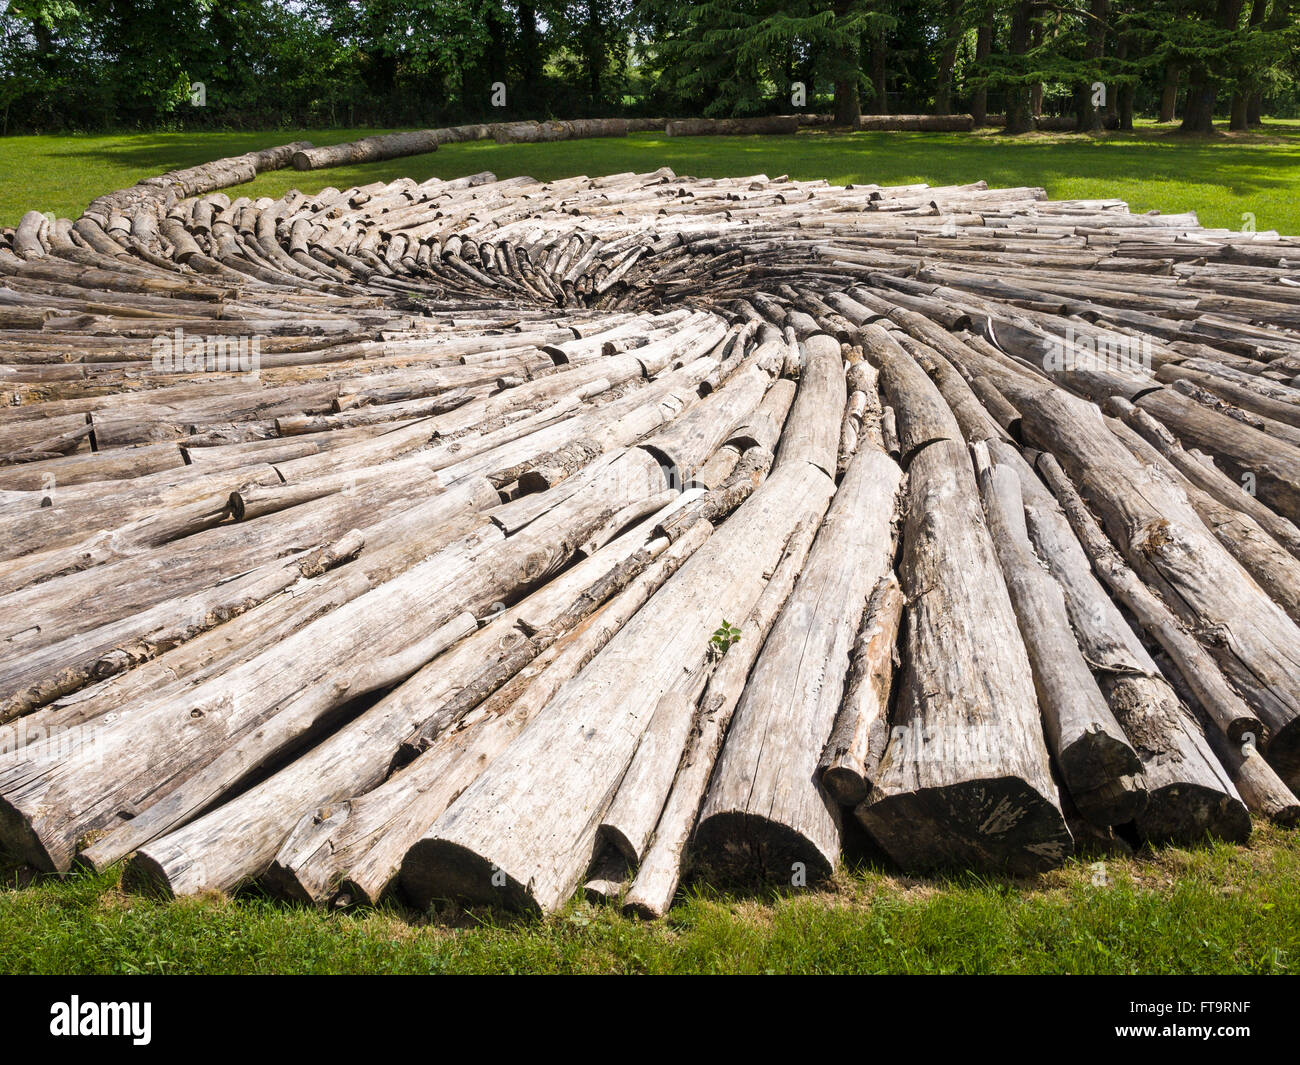 Carbon Pool, a landscape sculpture by Chris Drury. Consisting of logs arranged into a spiral the sculpture is like - Stock Image